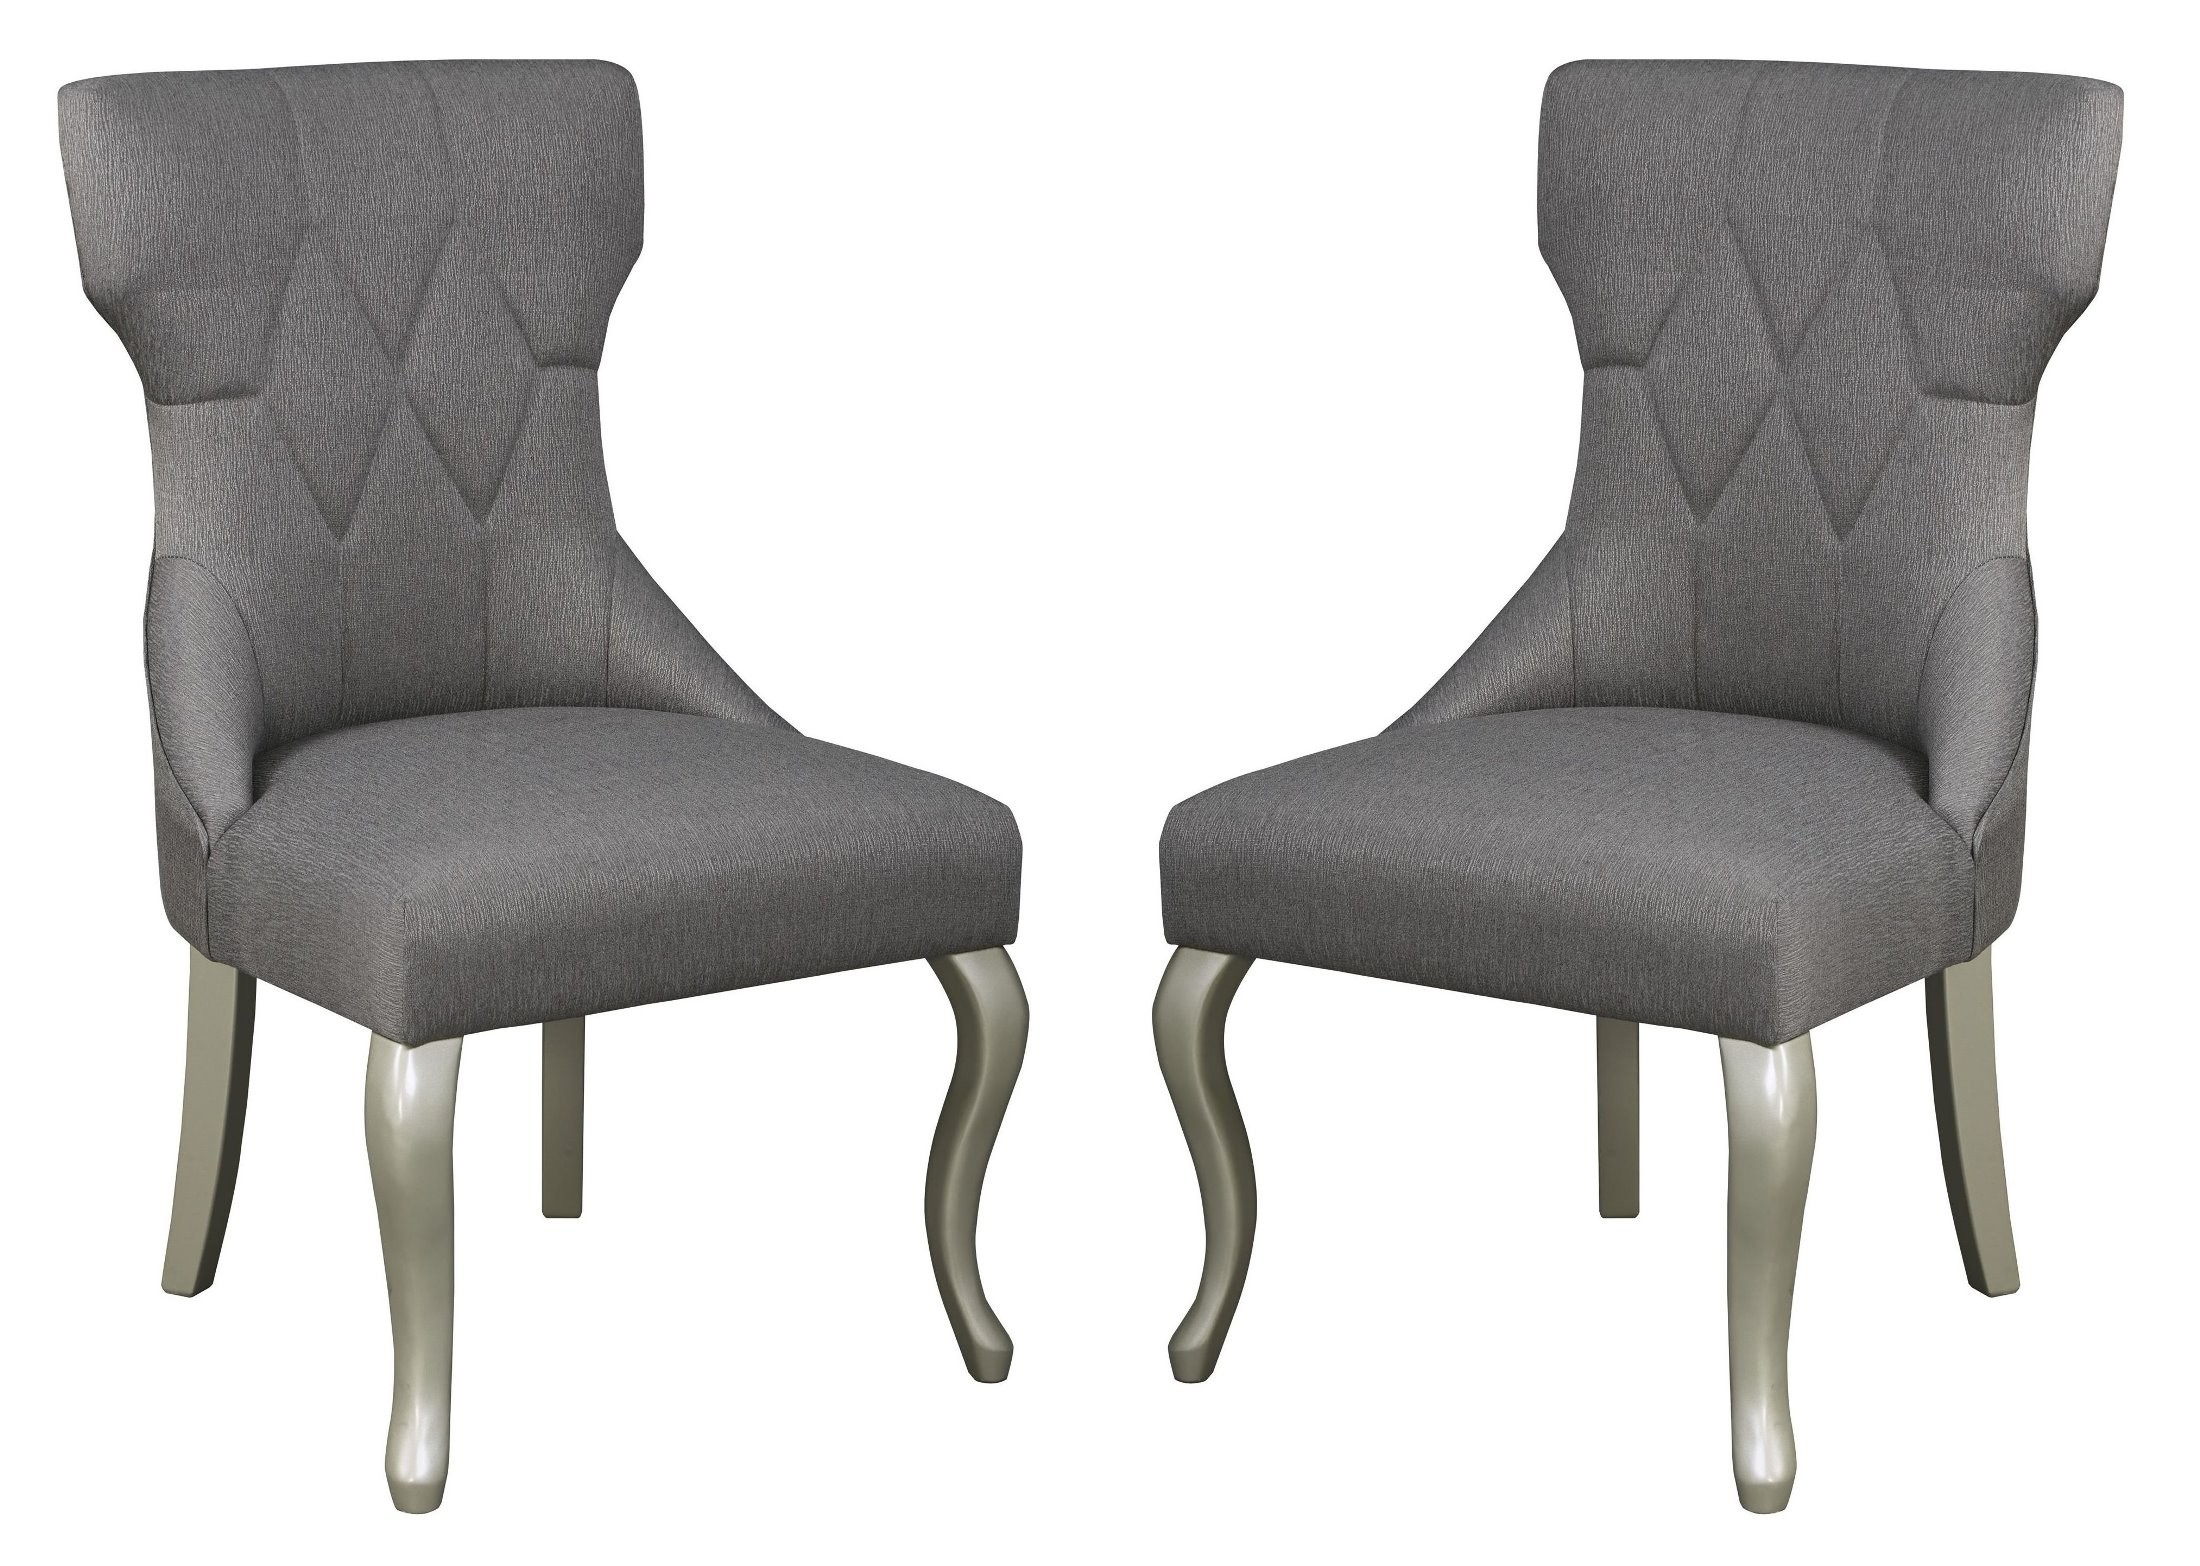 Dark Grey Dining Chairs Coralayne Dark Gray Dining Upholstered Side Chair Set Of 2